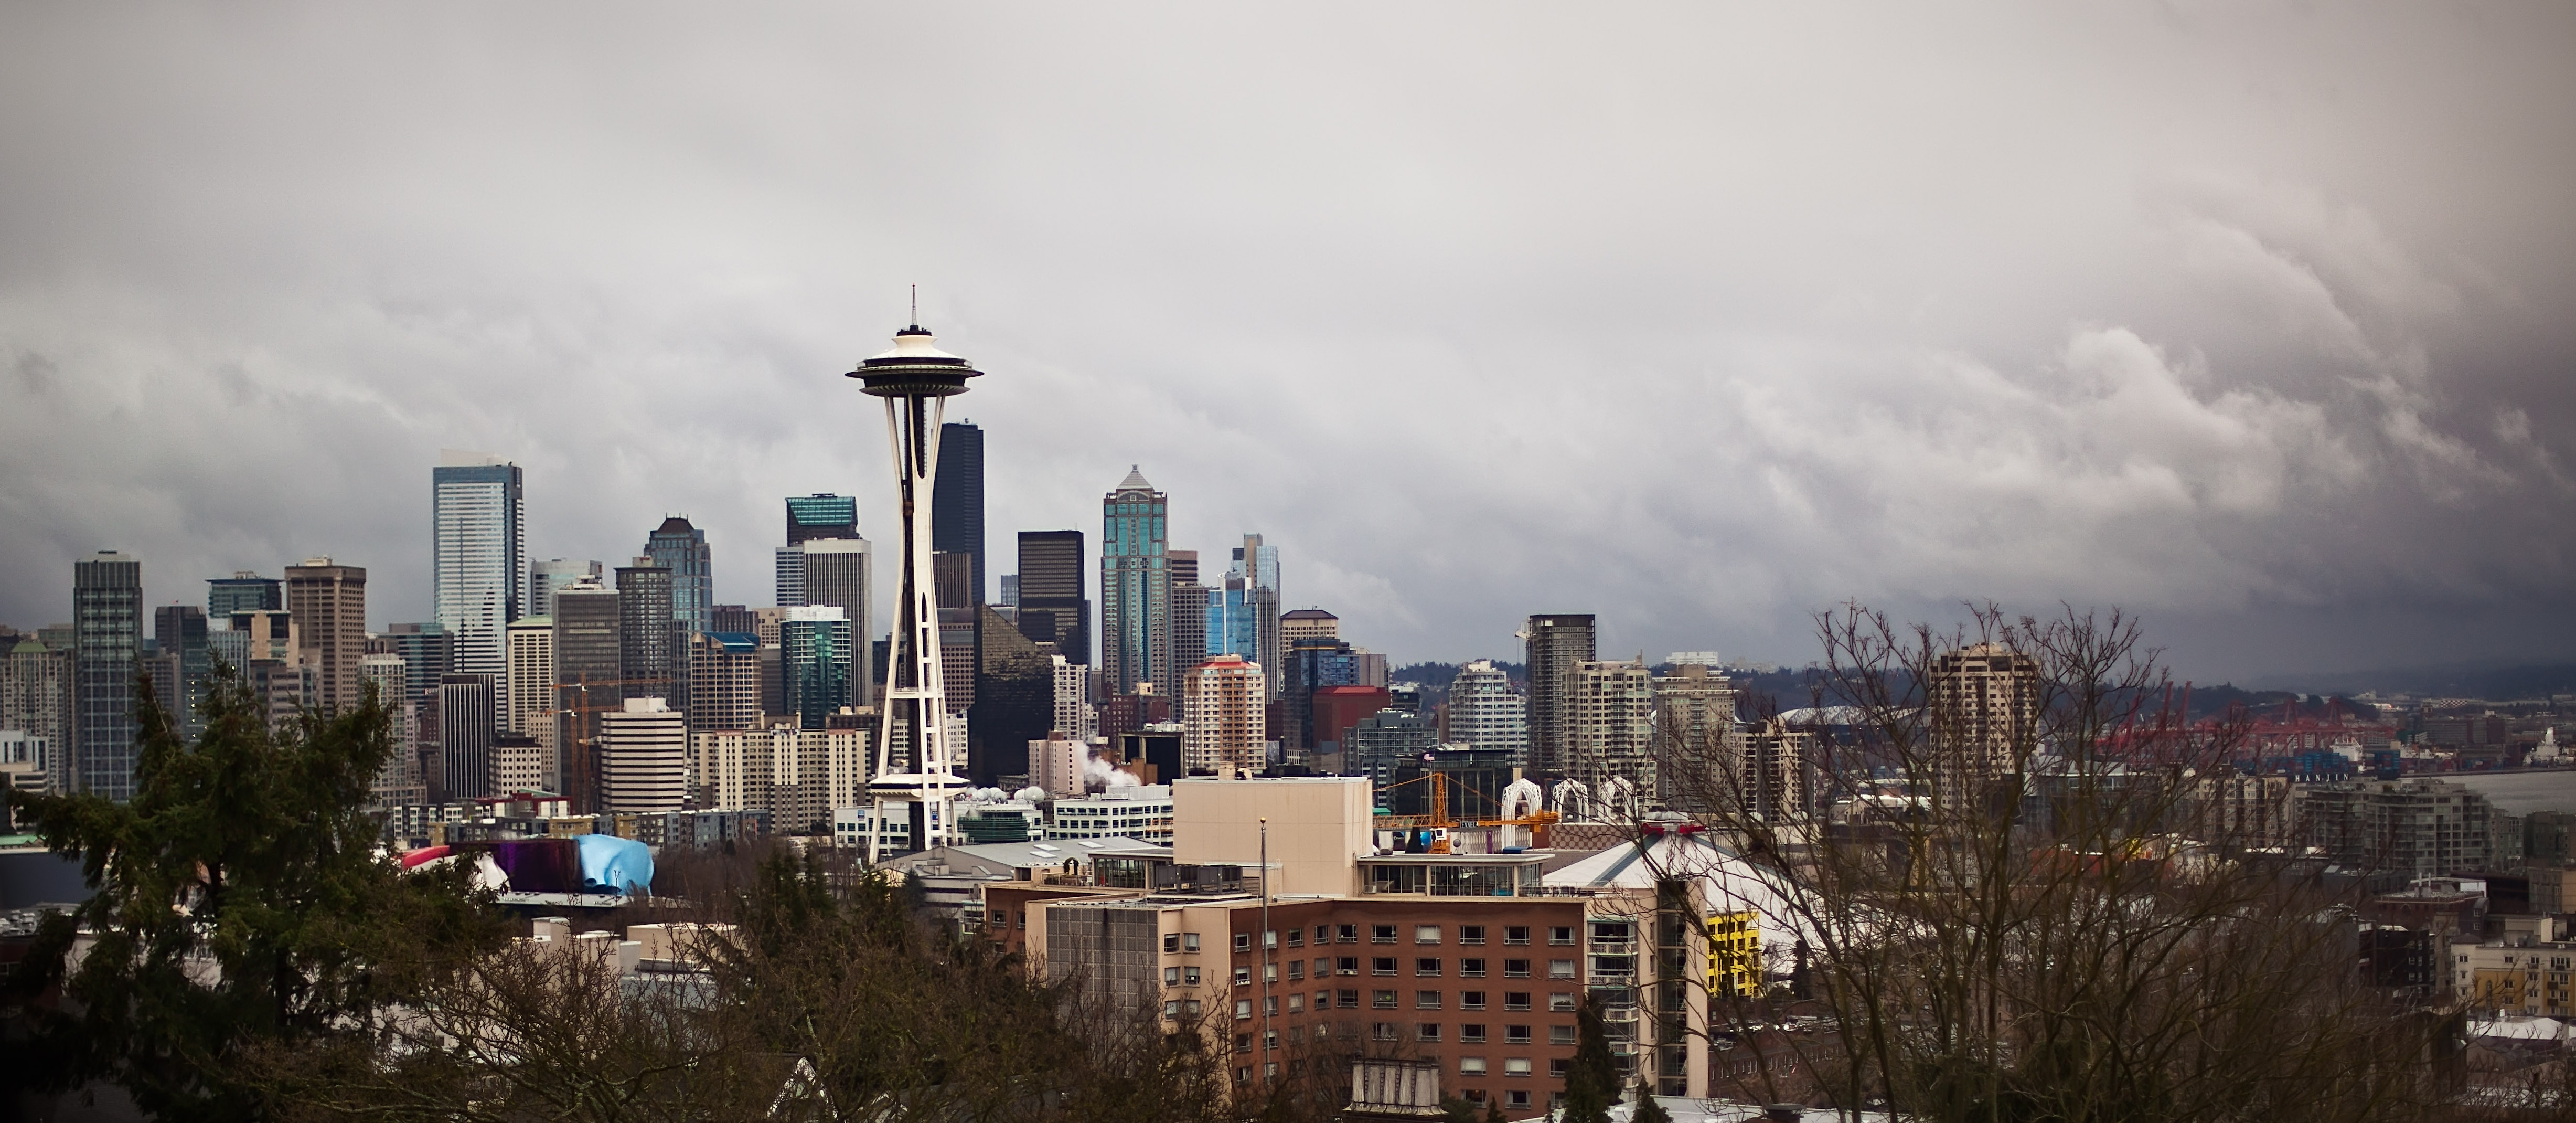 20120315_seattle_6-edit.jpg